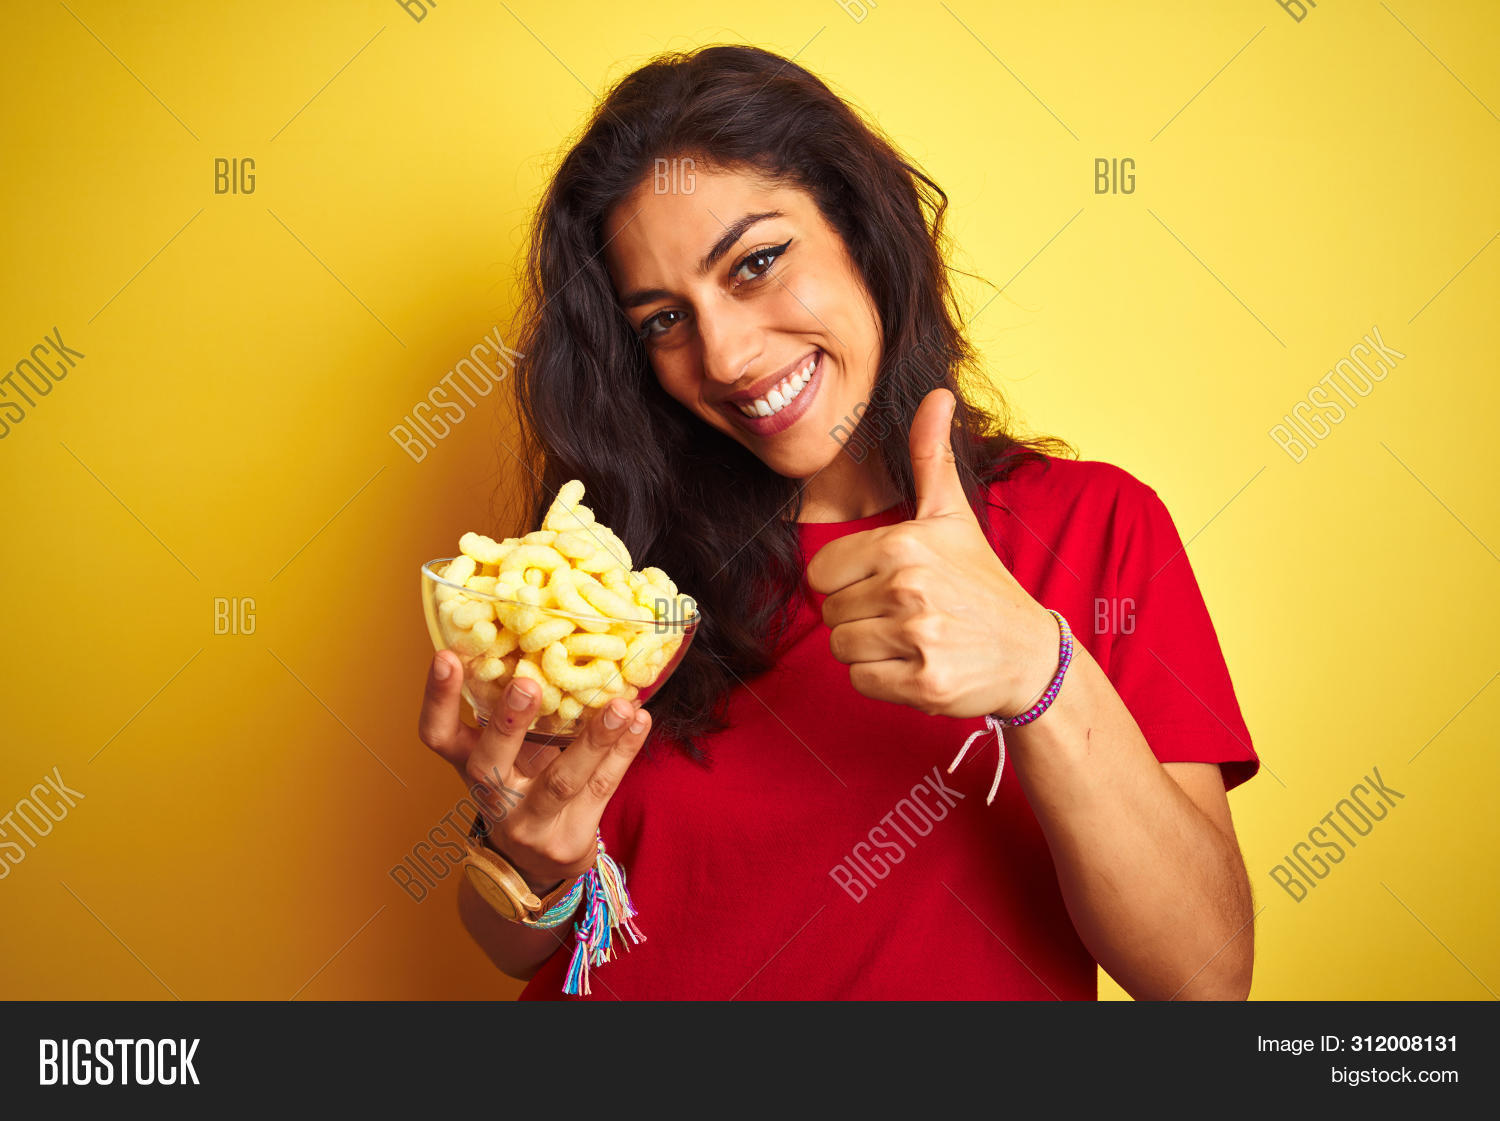 Young beautiful woman holding bowl with extruded corn over isolated yellow background happy with big